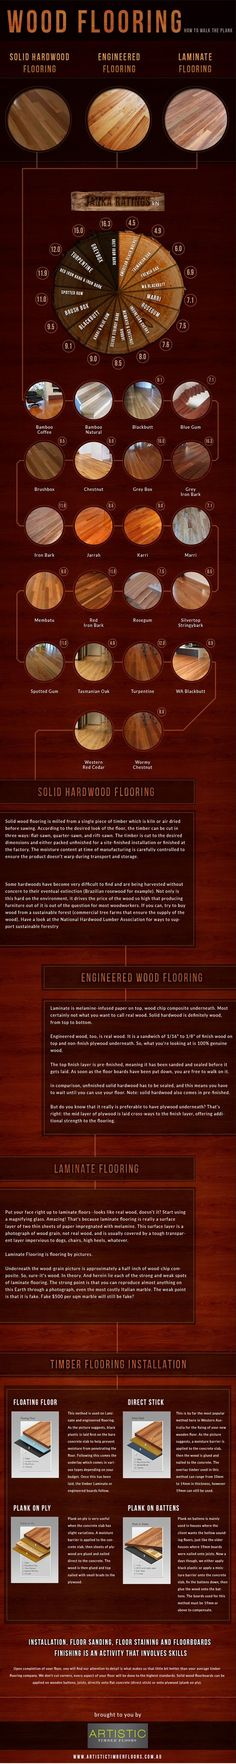 26 Best Uses For Leftover Hard Wood Flooring Images In